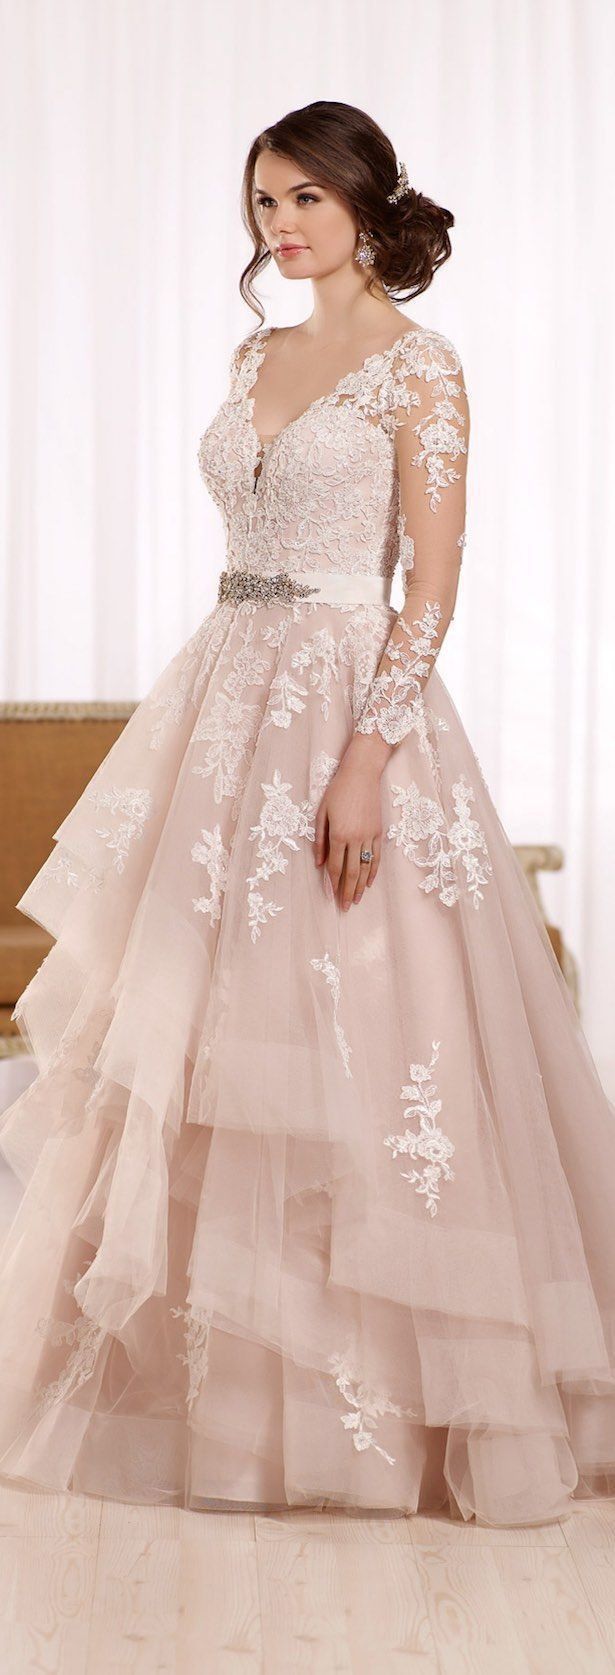 long wedding dress lace, wedding gown Essense of Australia Fall 2016 Wedding Dress